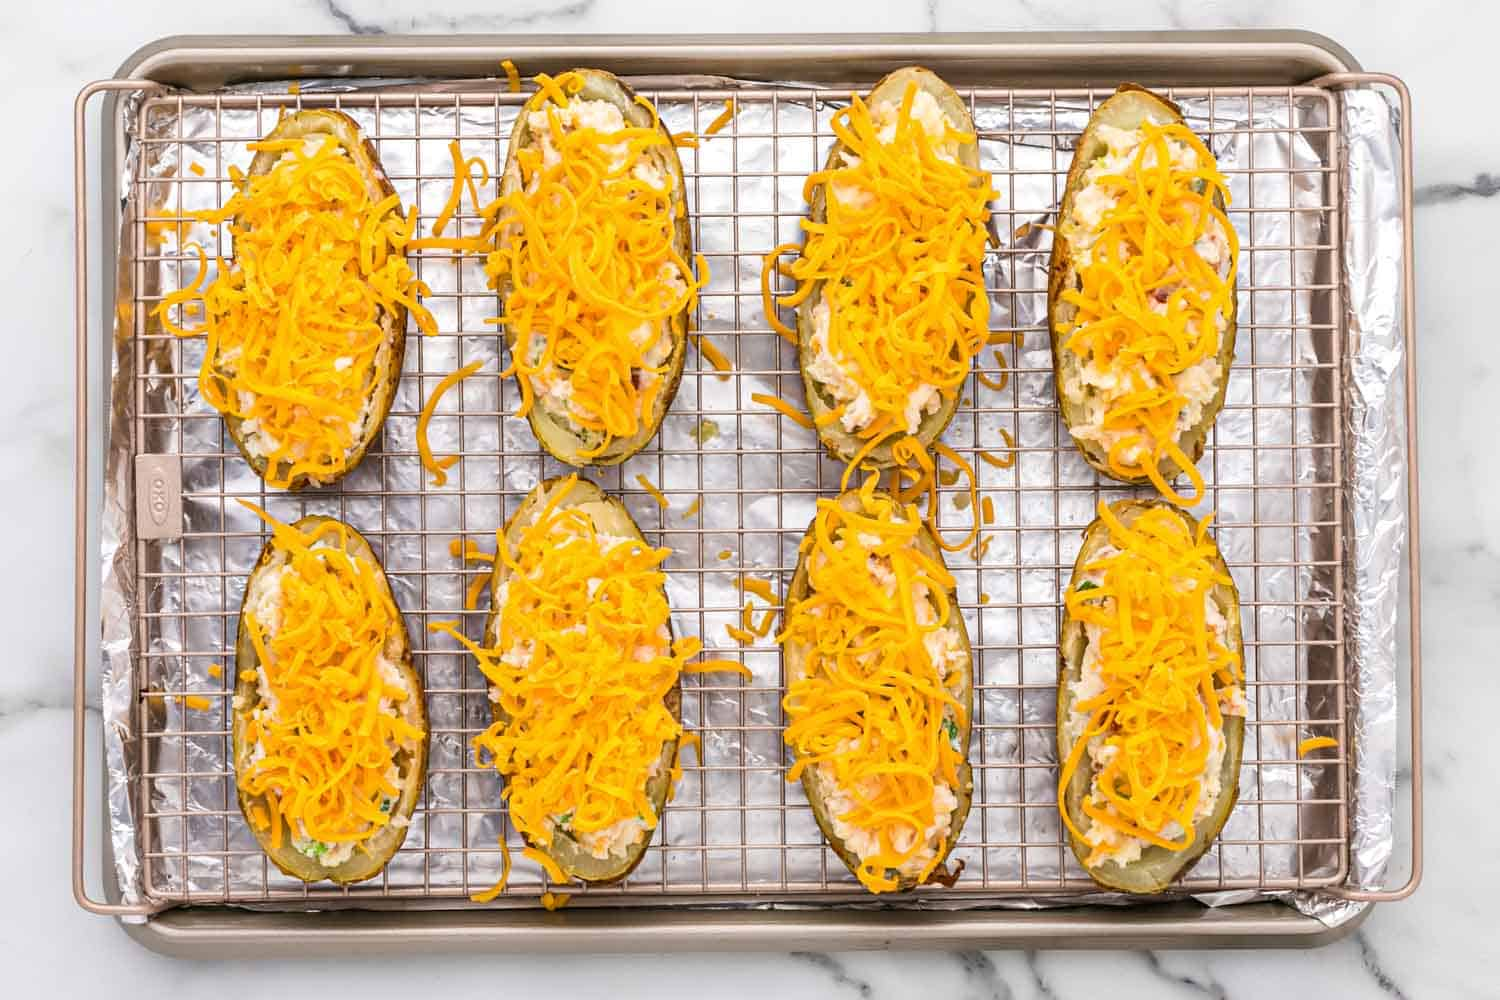 Twice baked potatoes topped with cheese, placed on a wire rack